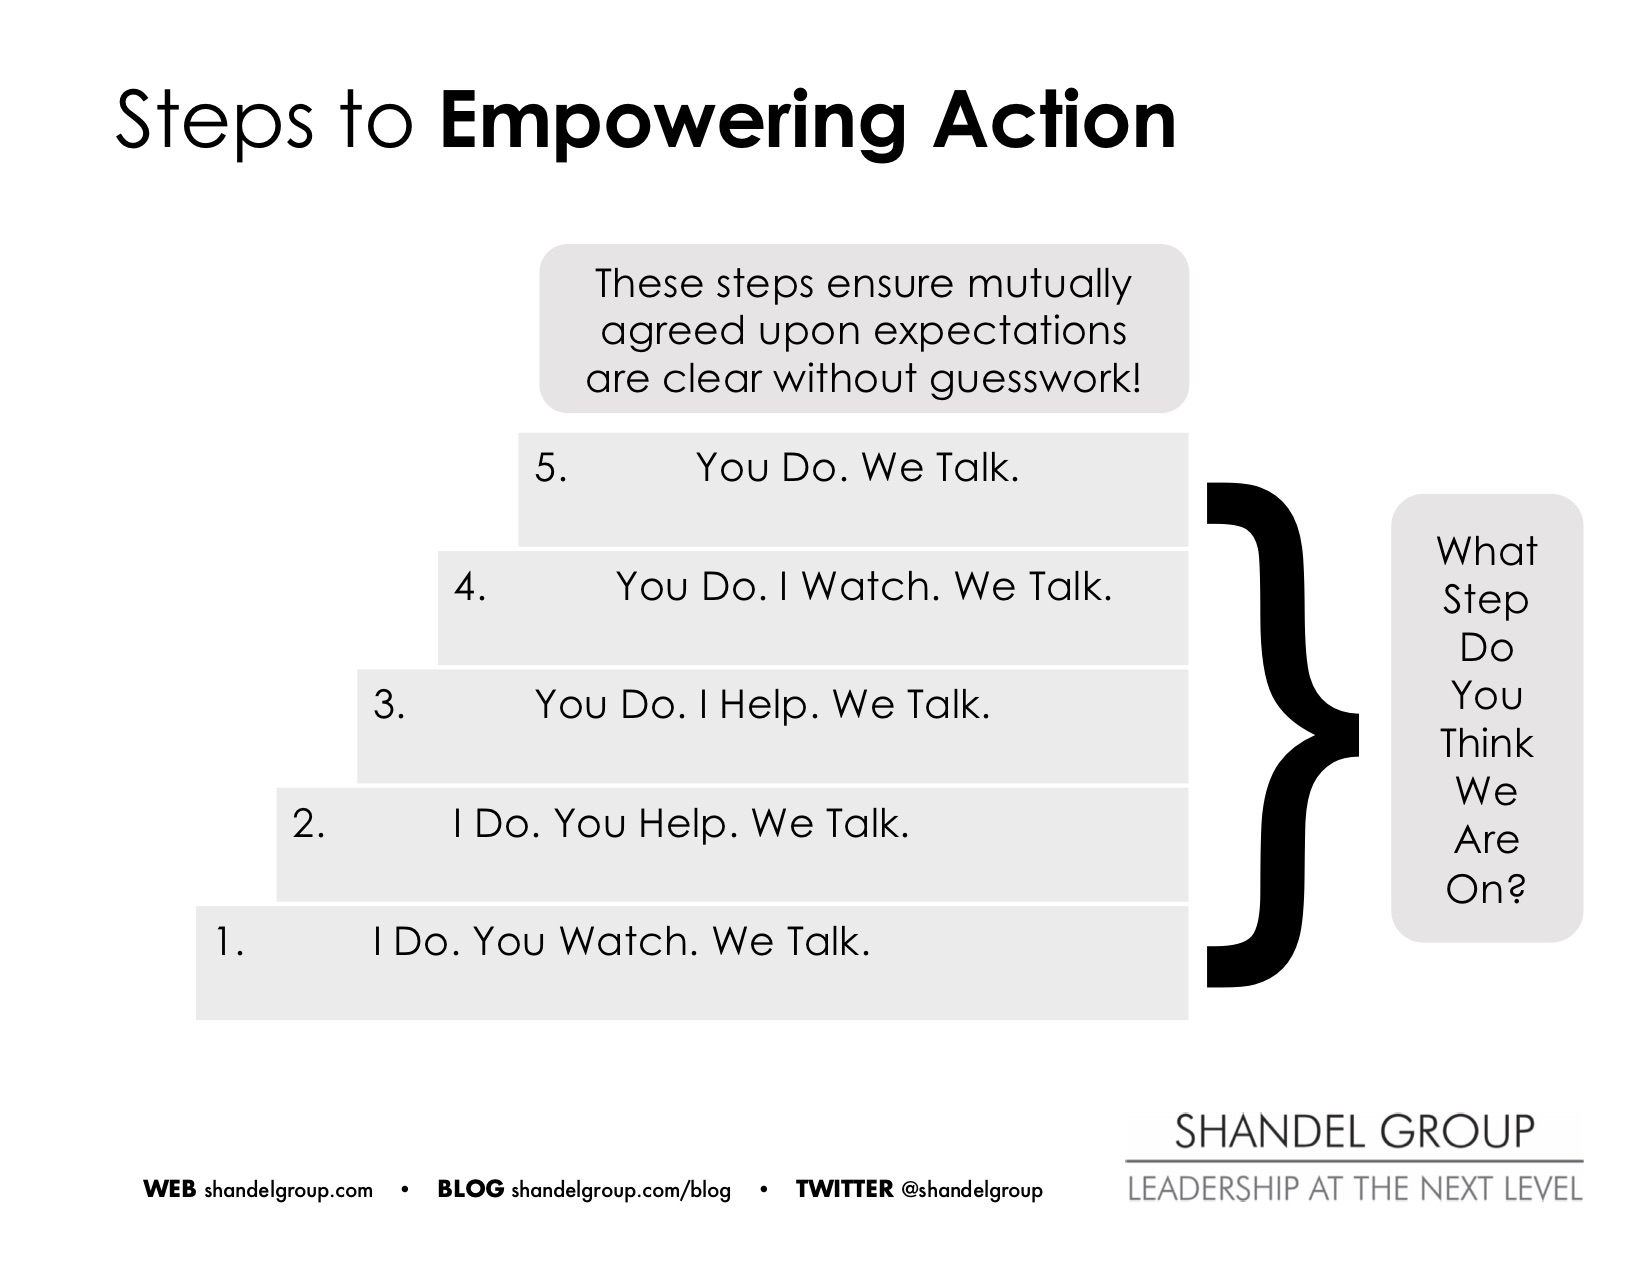 Empowering Action_Shandel Group Printout.jpg